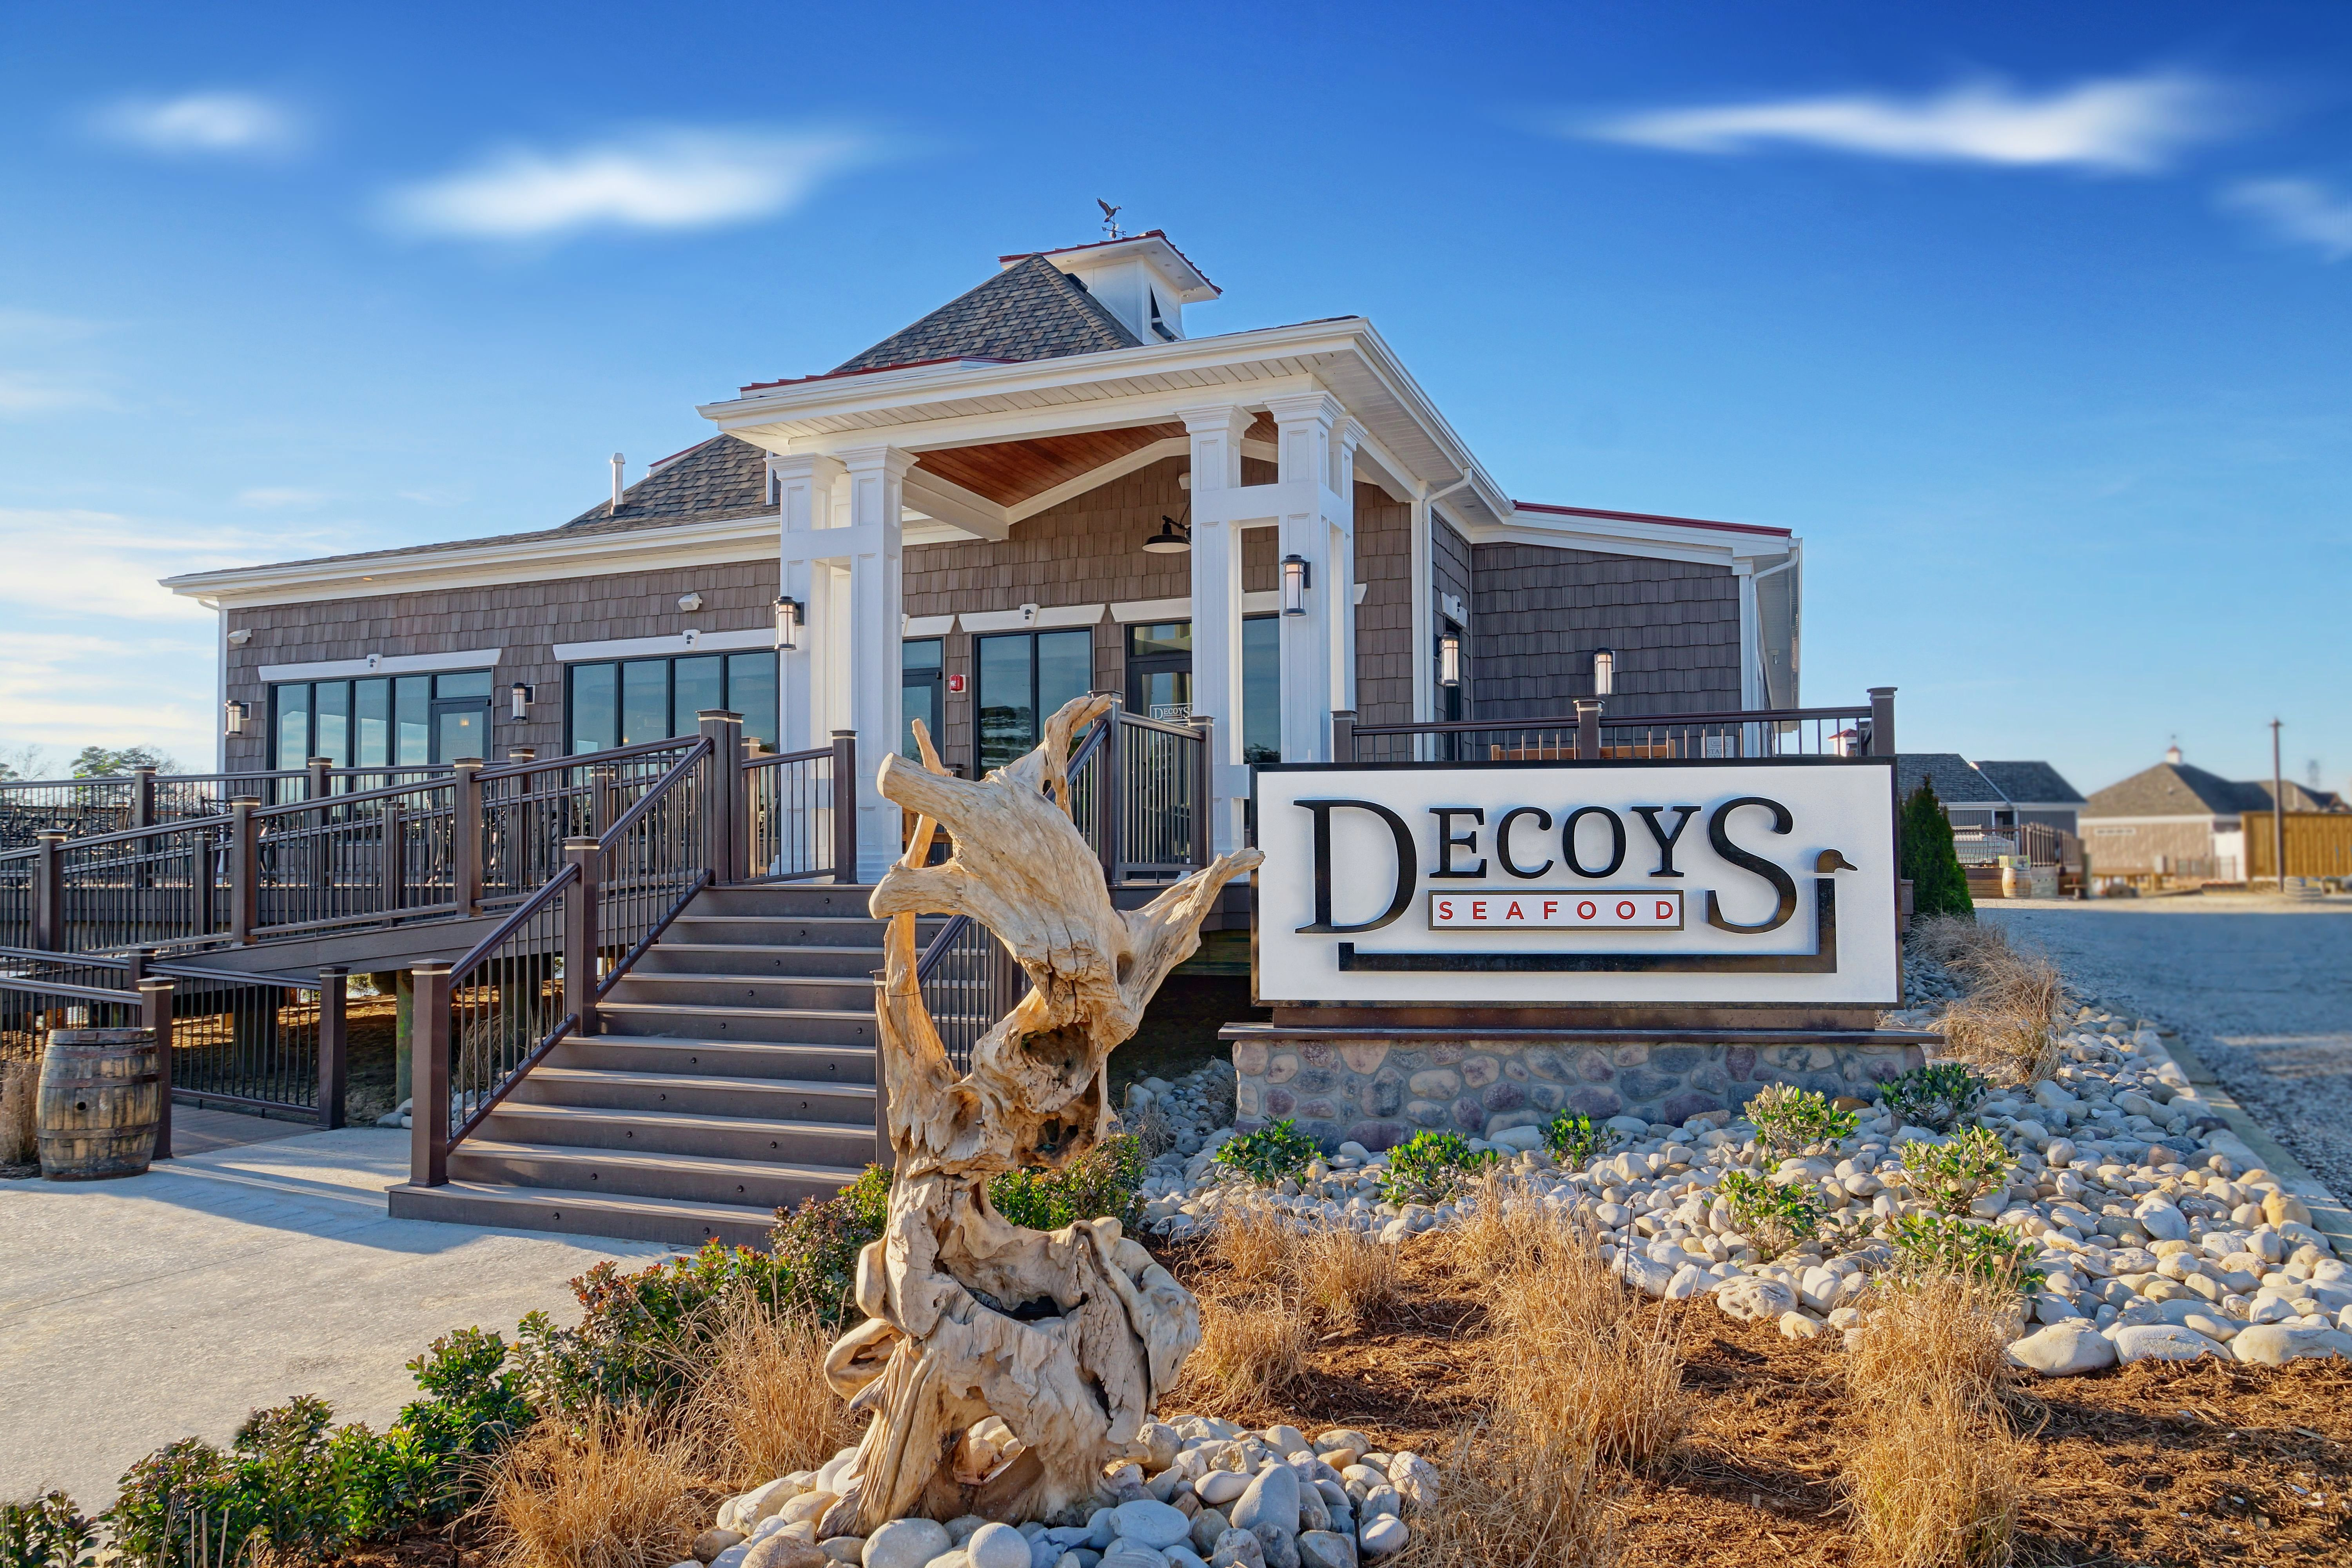 Hunting For A Local Getaway? Duck Into Decoys And Stay Awhile